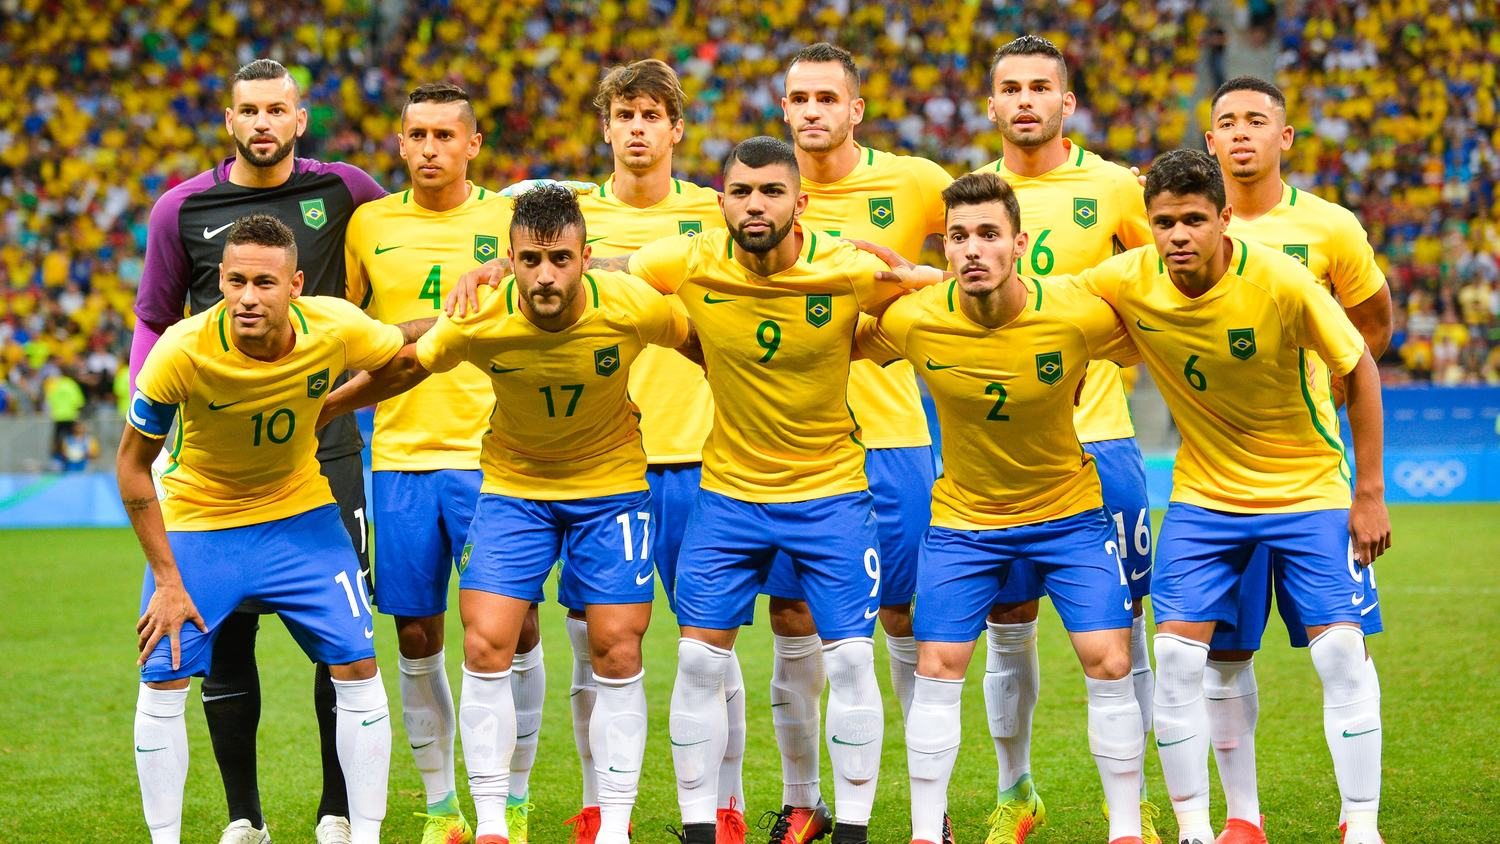 More than a gold medal: a new dawn for Brazil